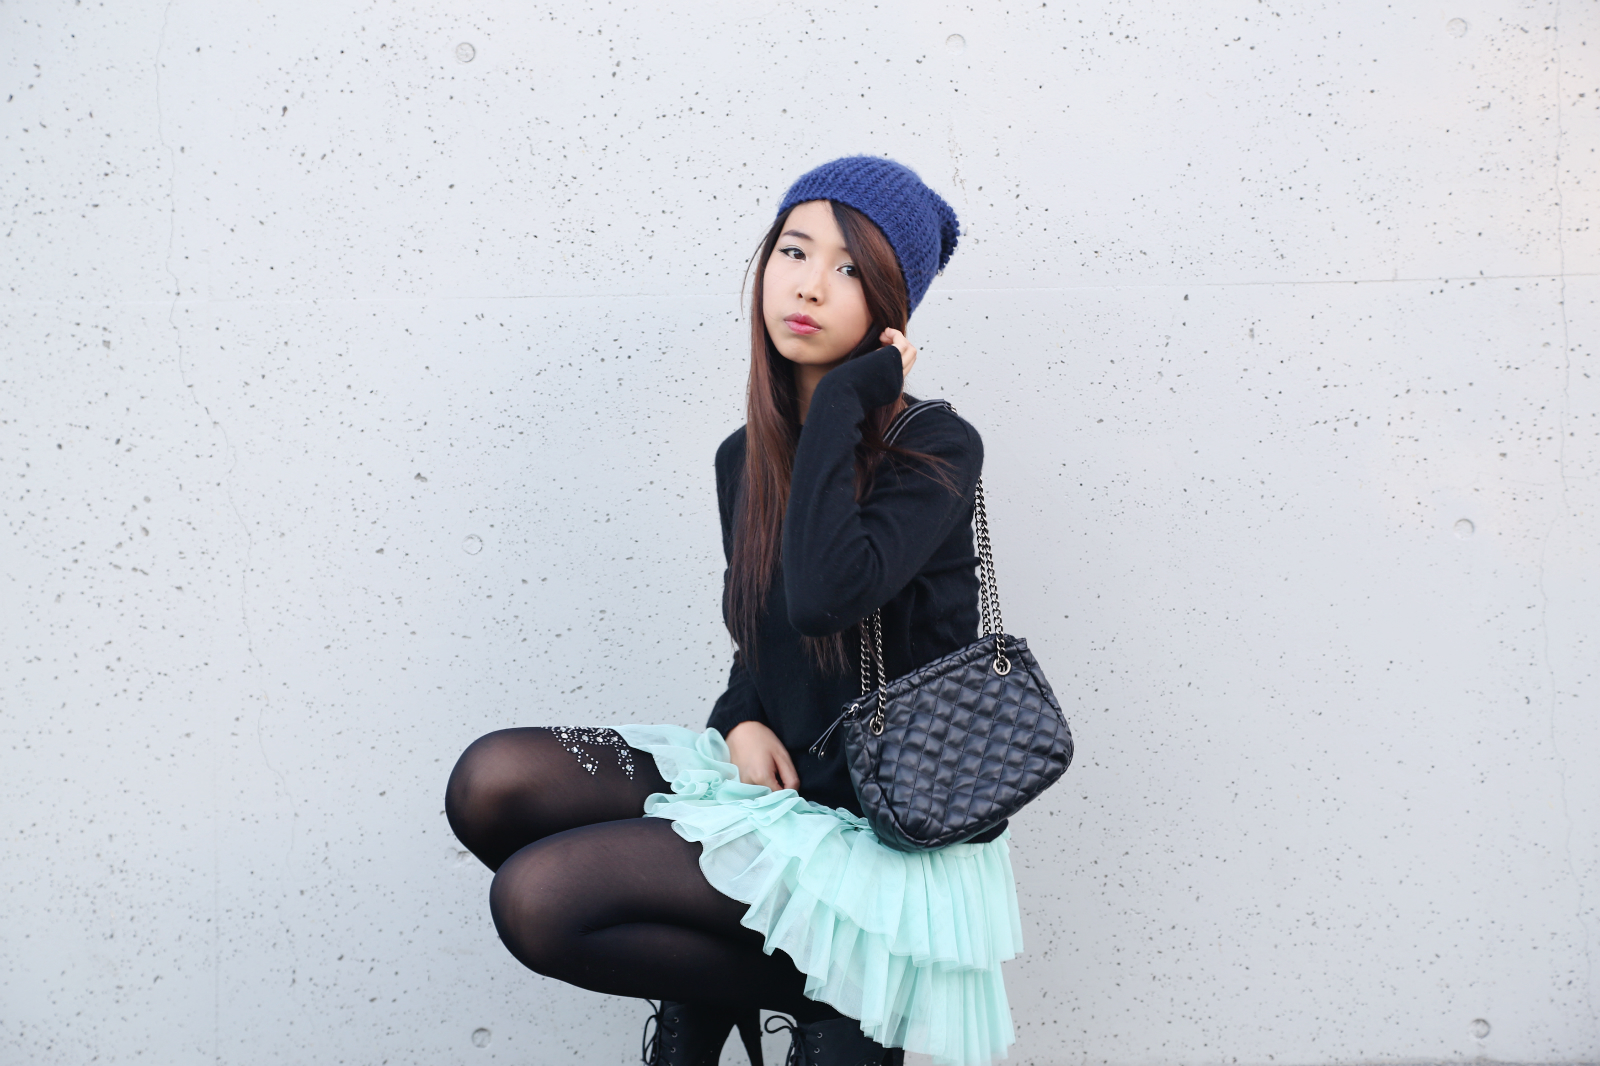 tights ulzzang asian cute japanese aquamarine gong pose chinese teen pretty adorable pouty tutu sweater club allygong outfits ally kawaii